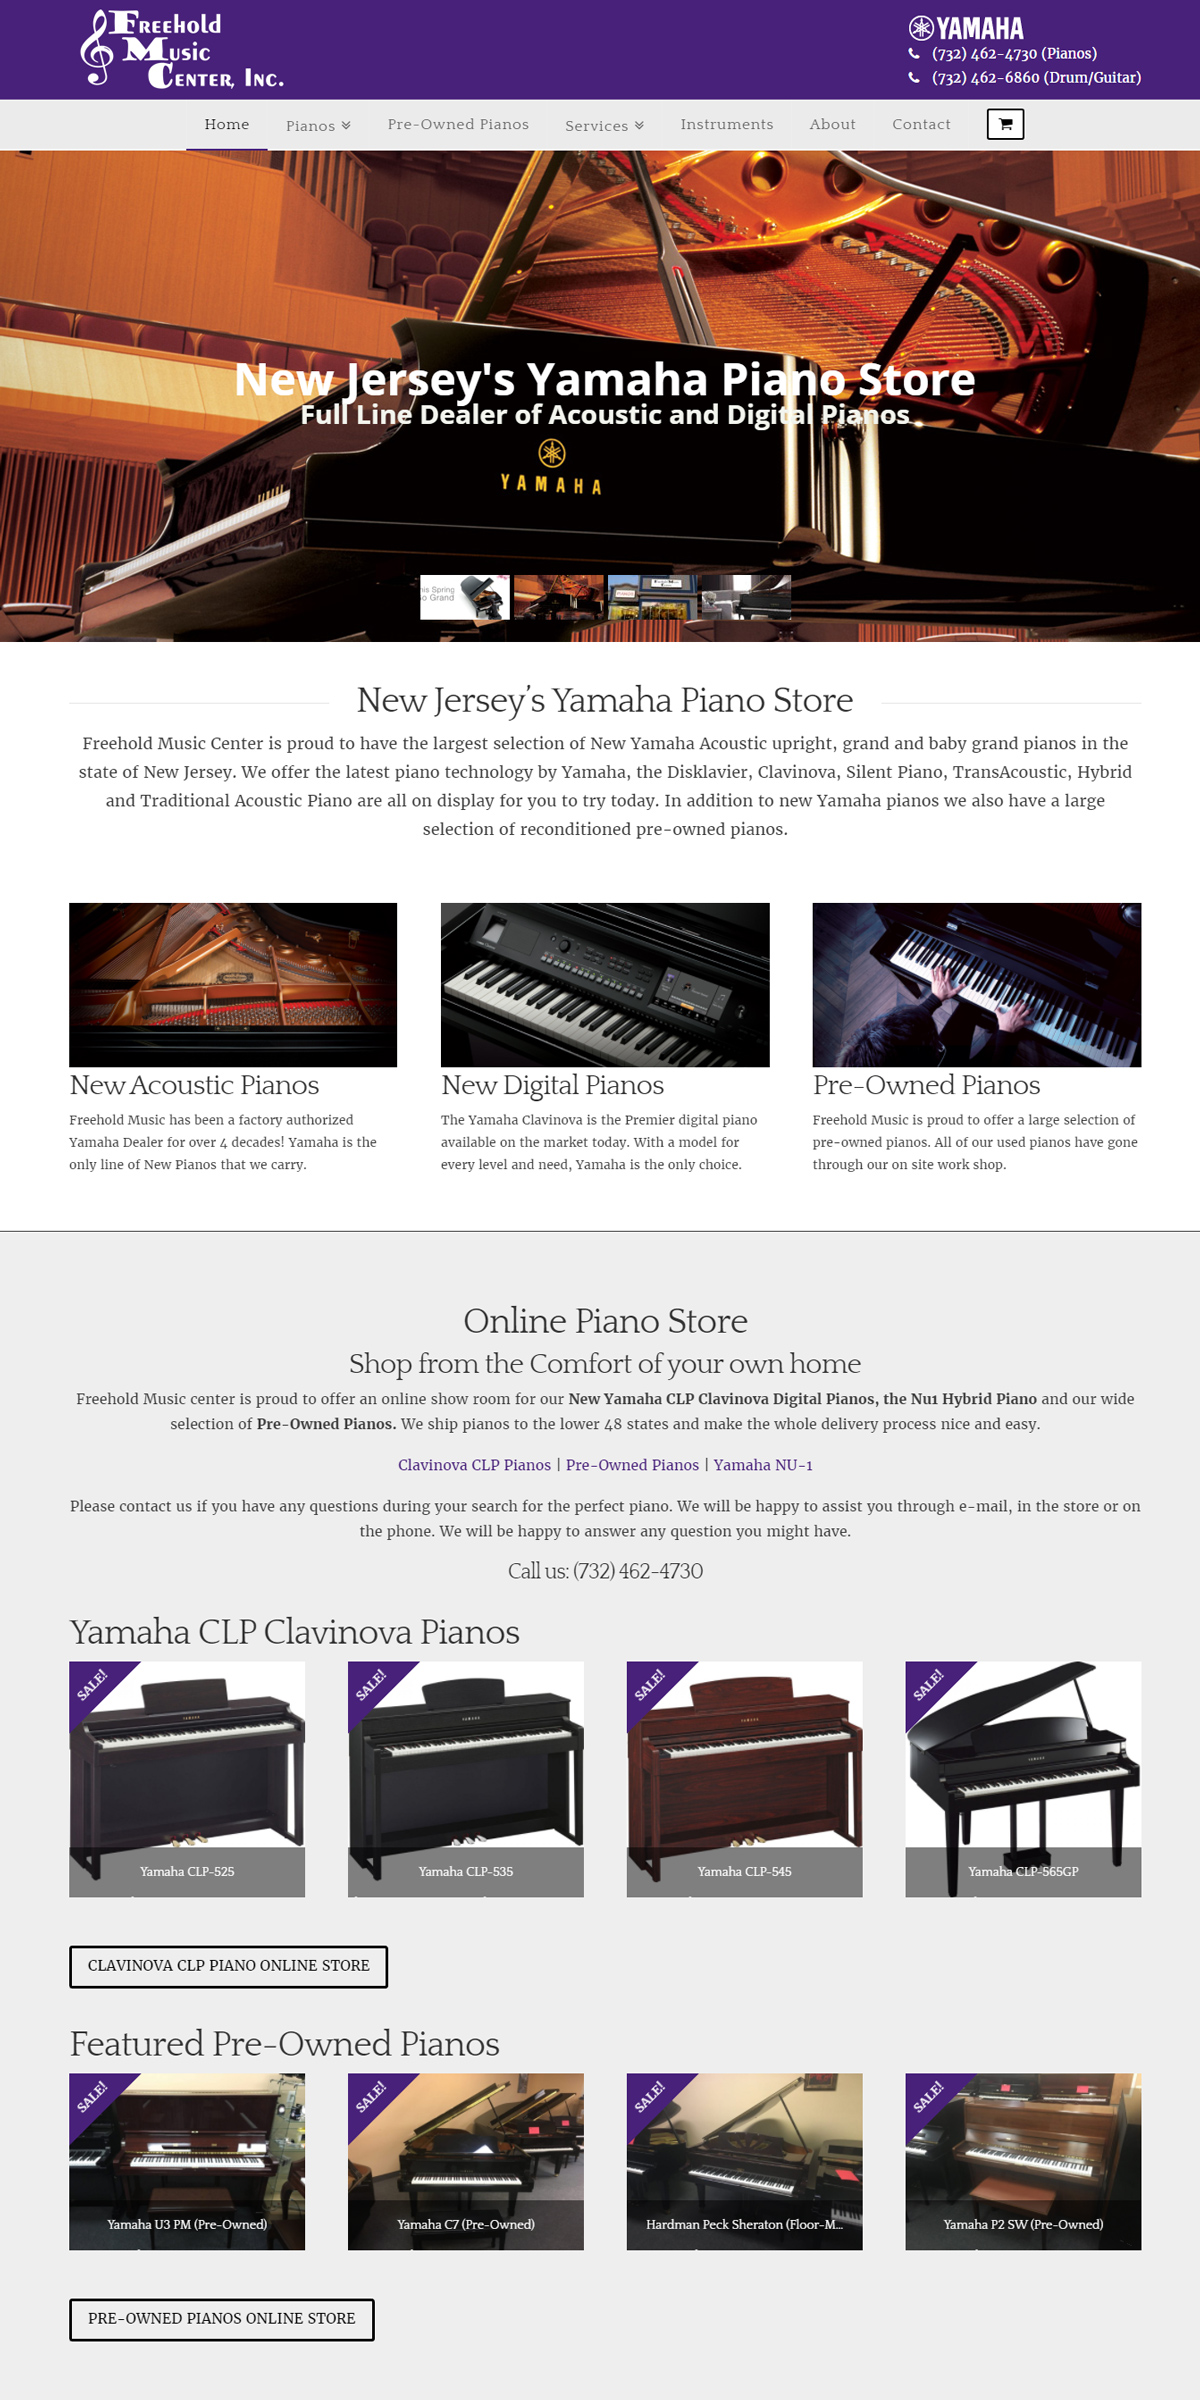 Piano Store Website Design - Home